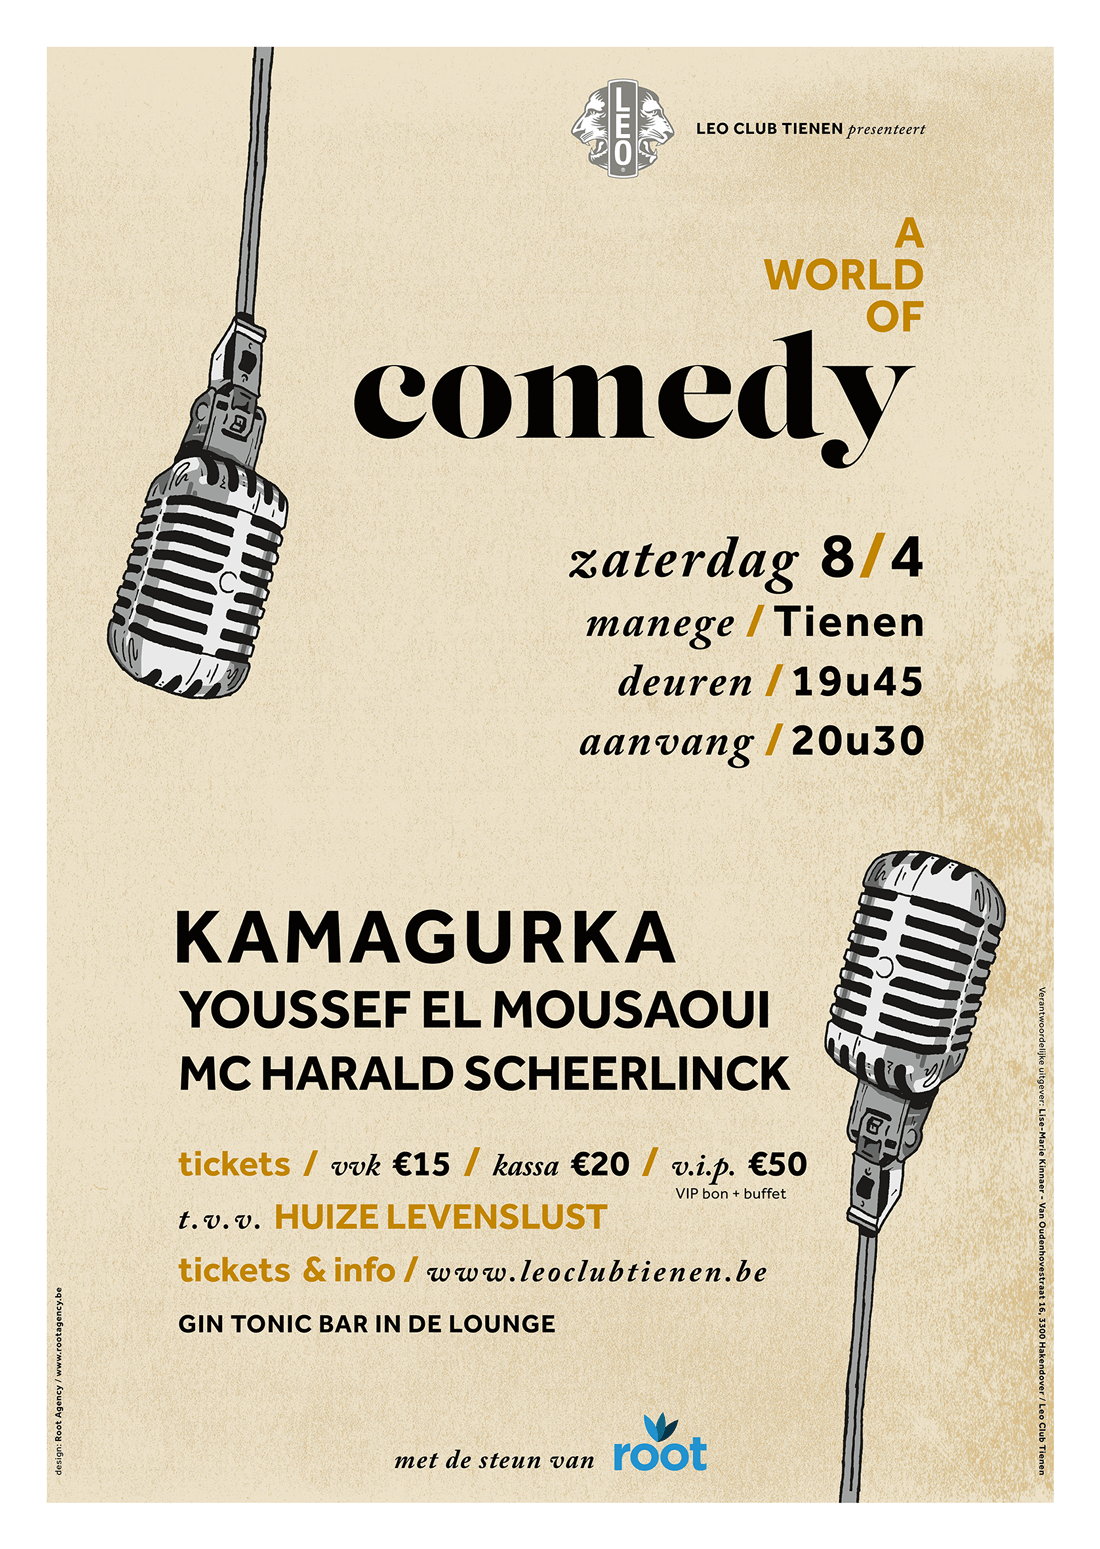 ComedyAffiche Leo Club